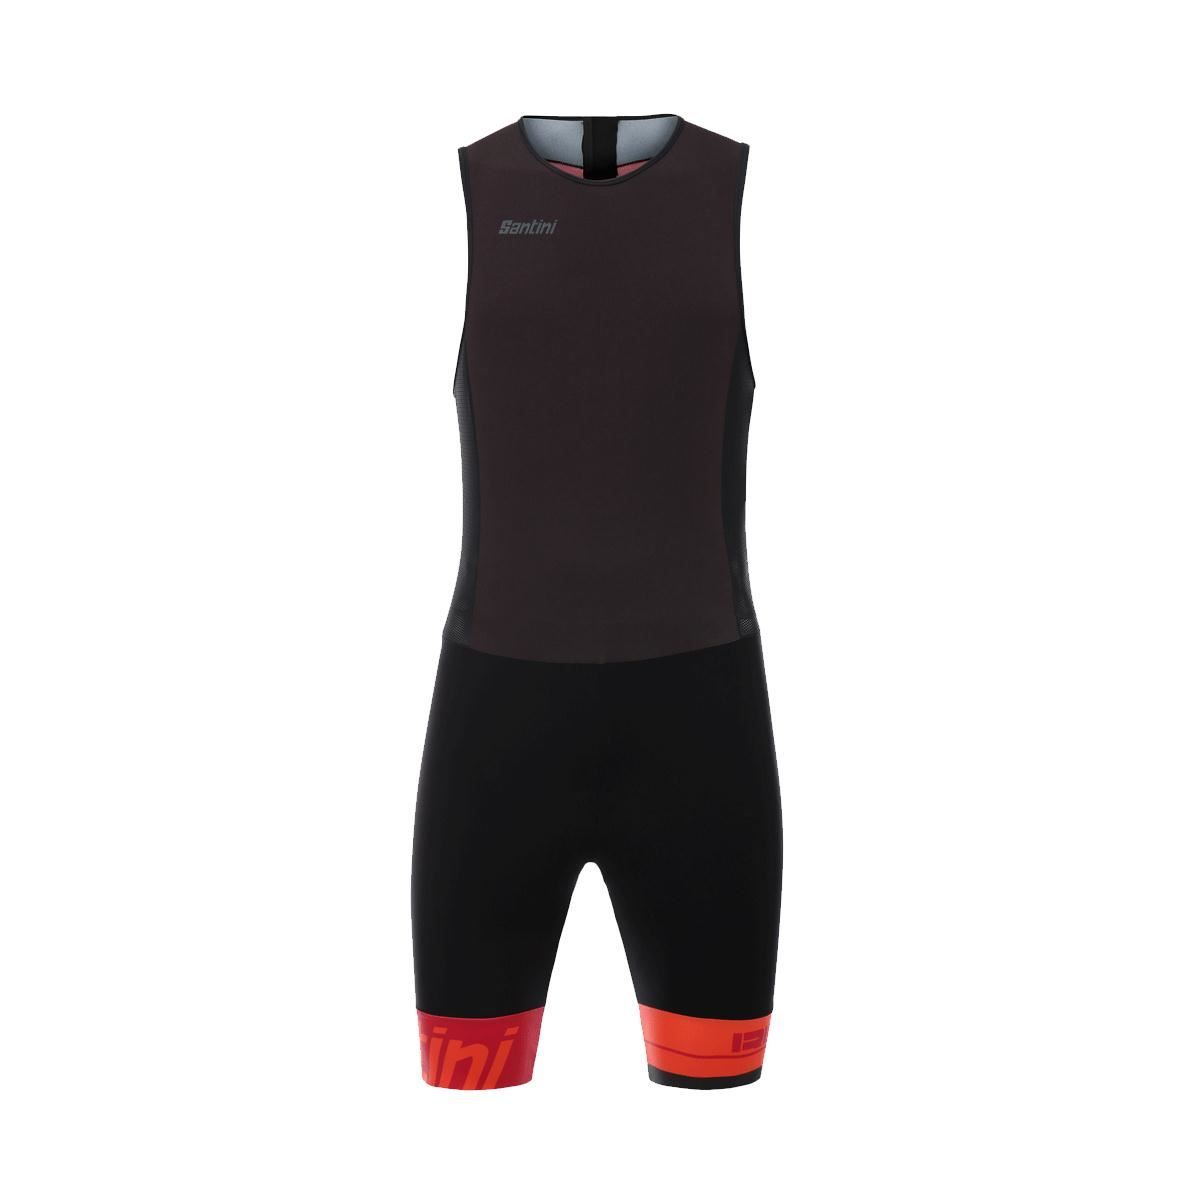 Santini Redux Sleeveless Trisuit Gtr Pad 2018: Red Xl